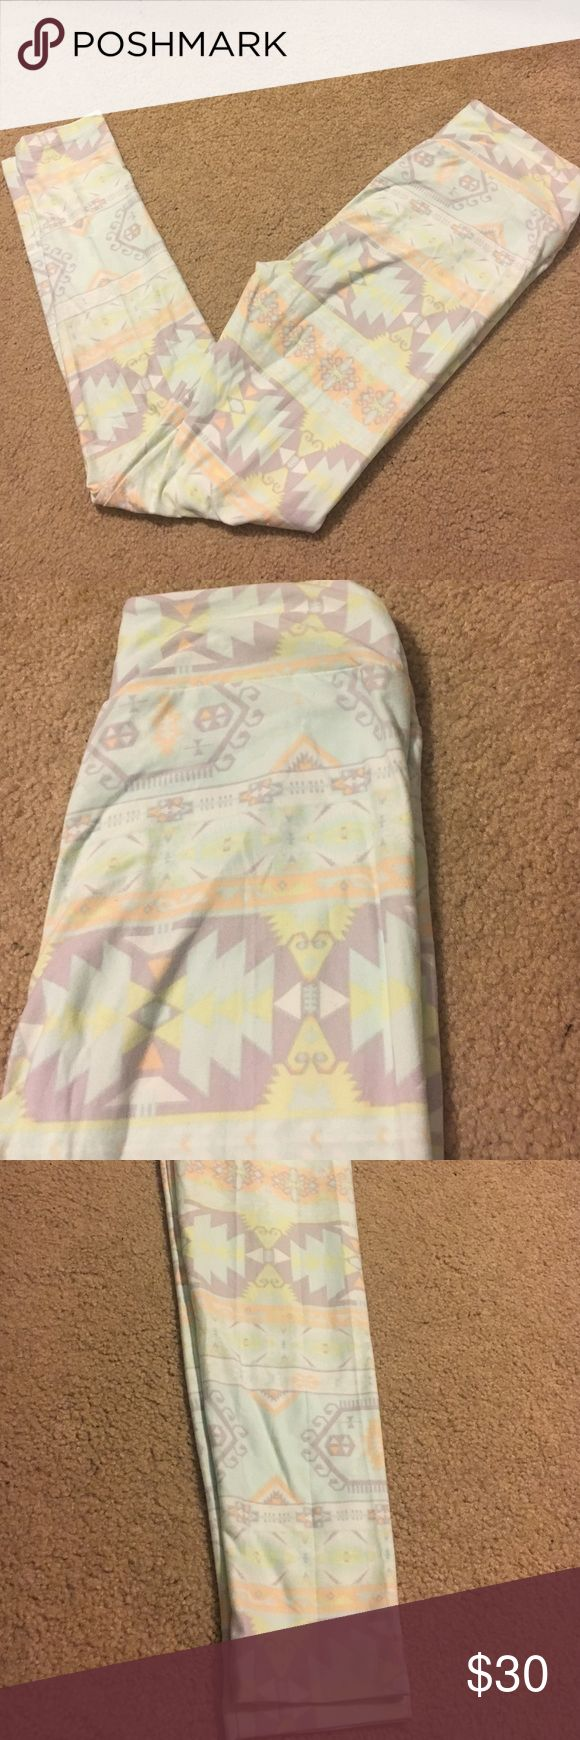 LulaRoe OS Pastel Aztec Print Leggings LulaRoe pastel blue, green, purple and orange Aztec print leggings. OS - one size - fits most 0-12 LuLaRoe Pants Leggings